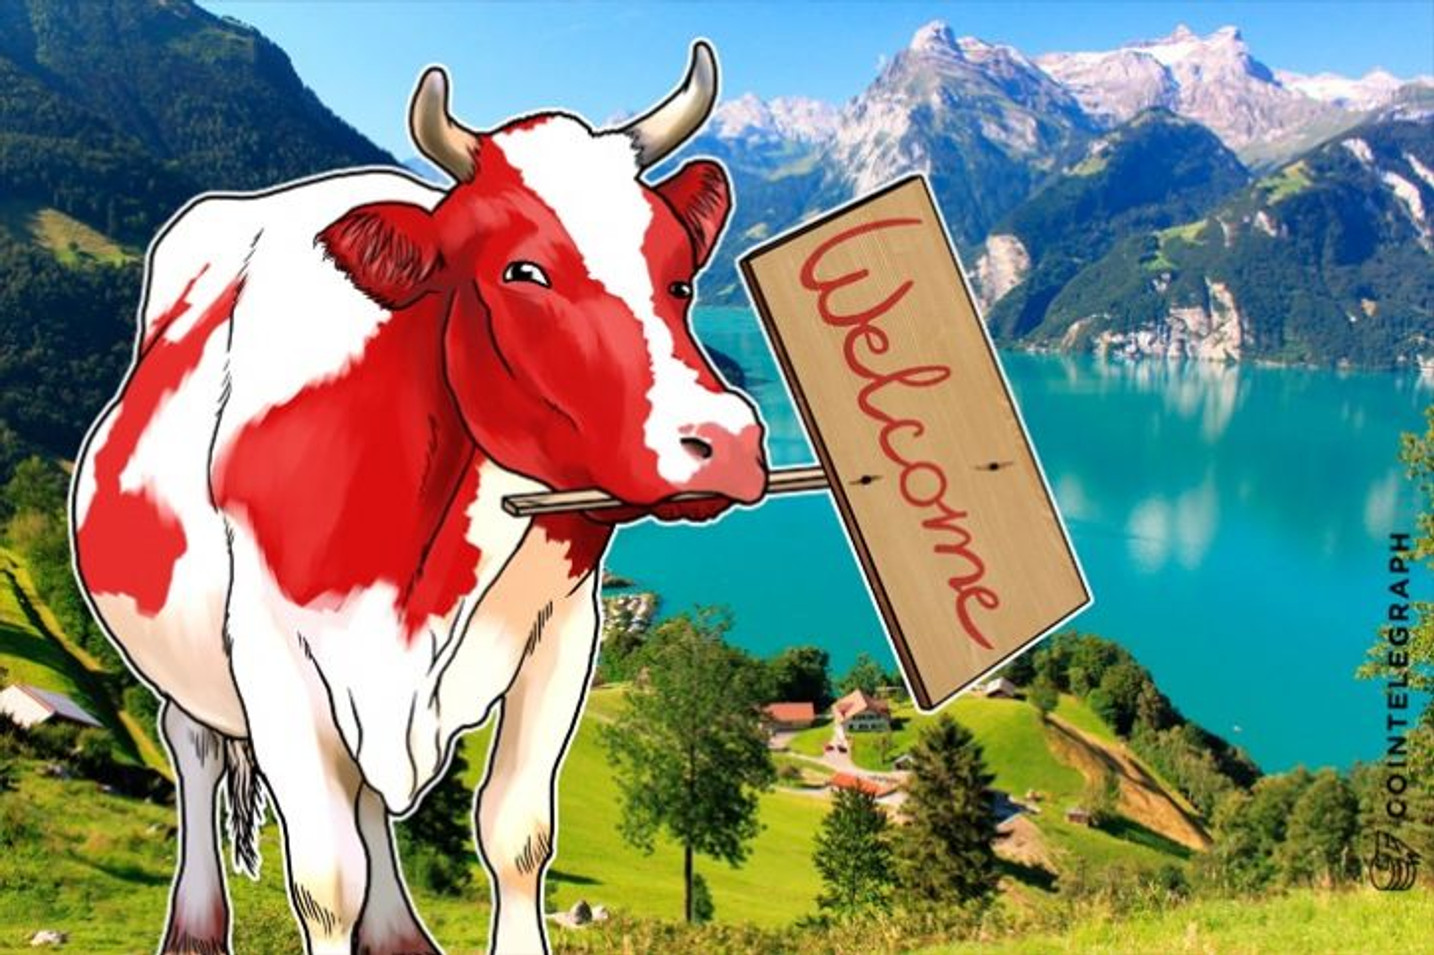 Swiss Regulators Investigating ICOs, Still Support Blockchain